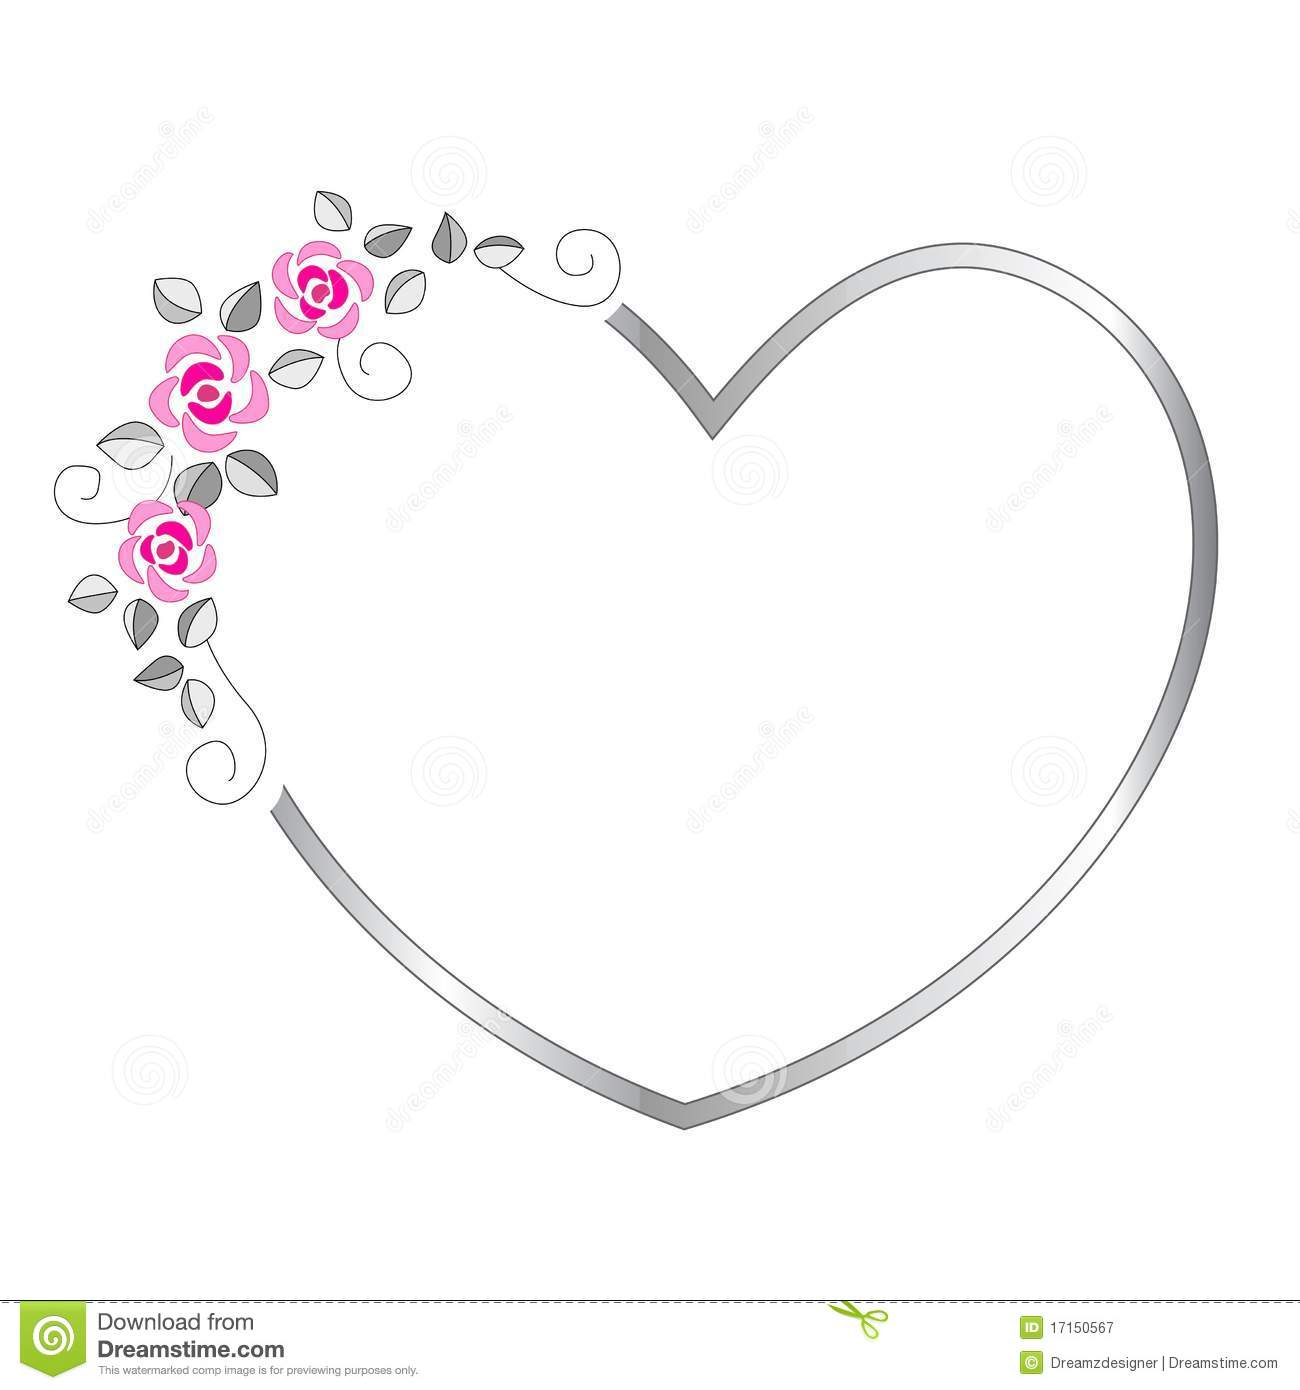 Heart Border Royalty Free Stock Photography